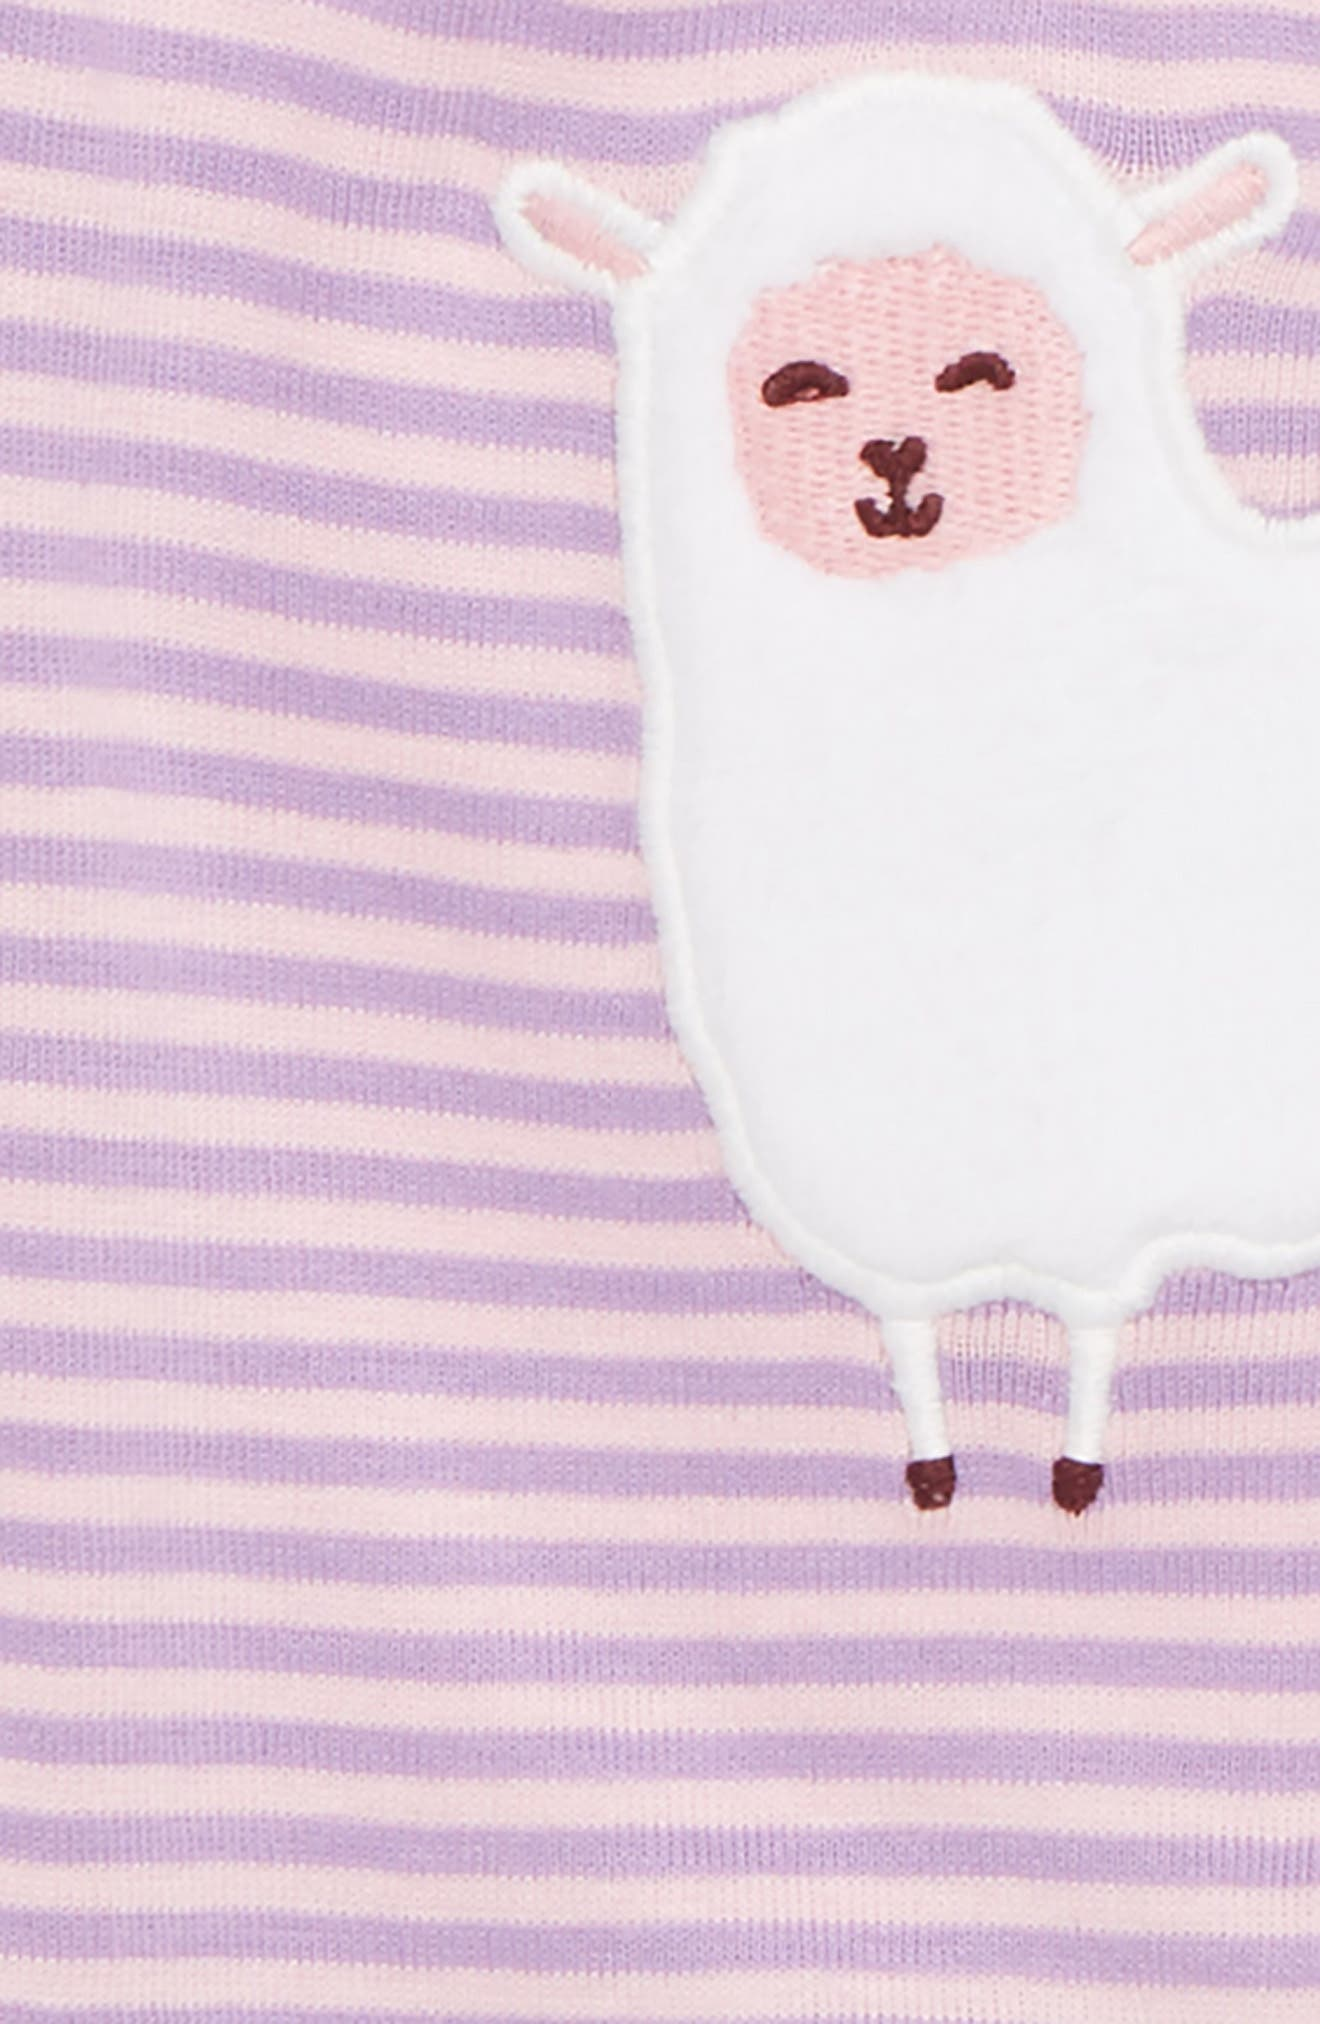 Counting Sheep Fitted Two-Piece Pajamas,                             Alternate thumbnail 2, color,                             Counting Sheep